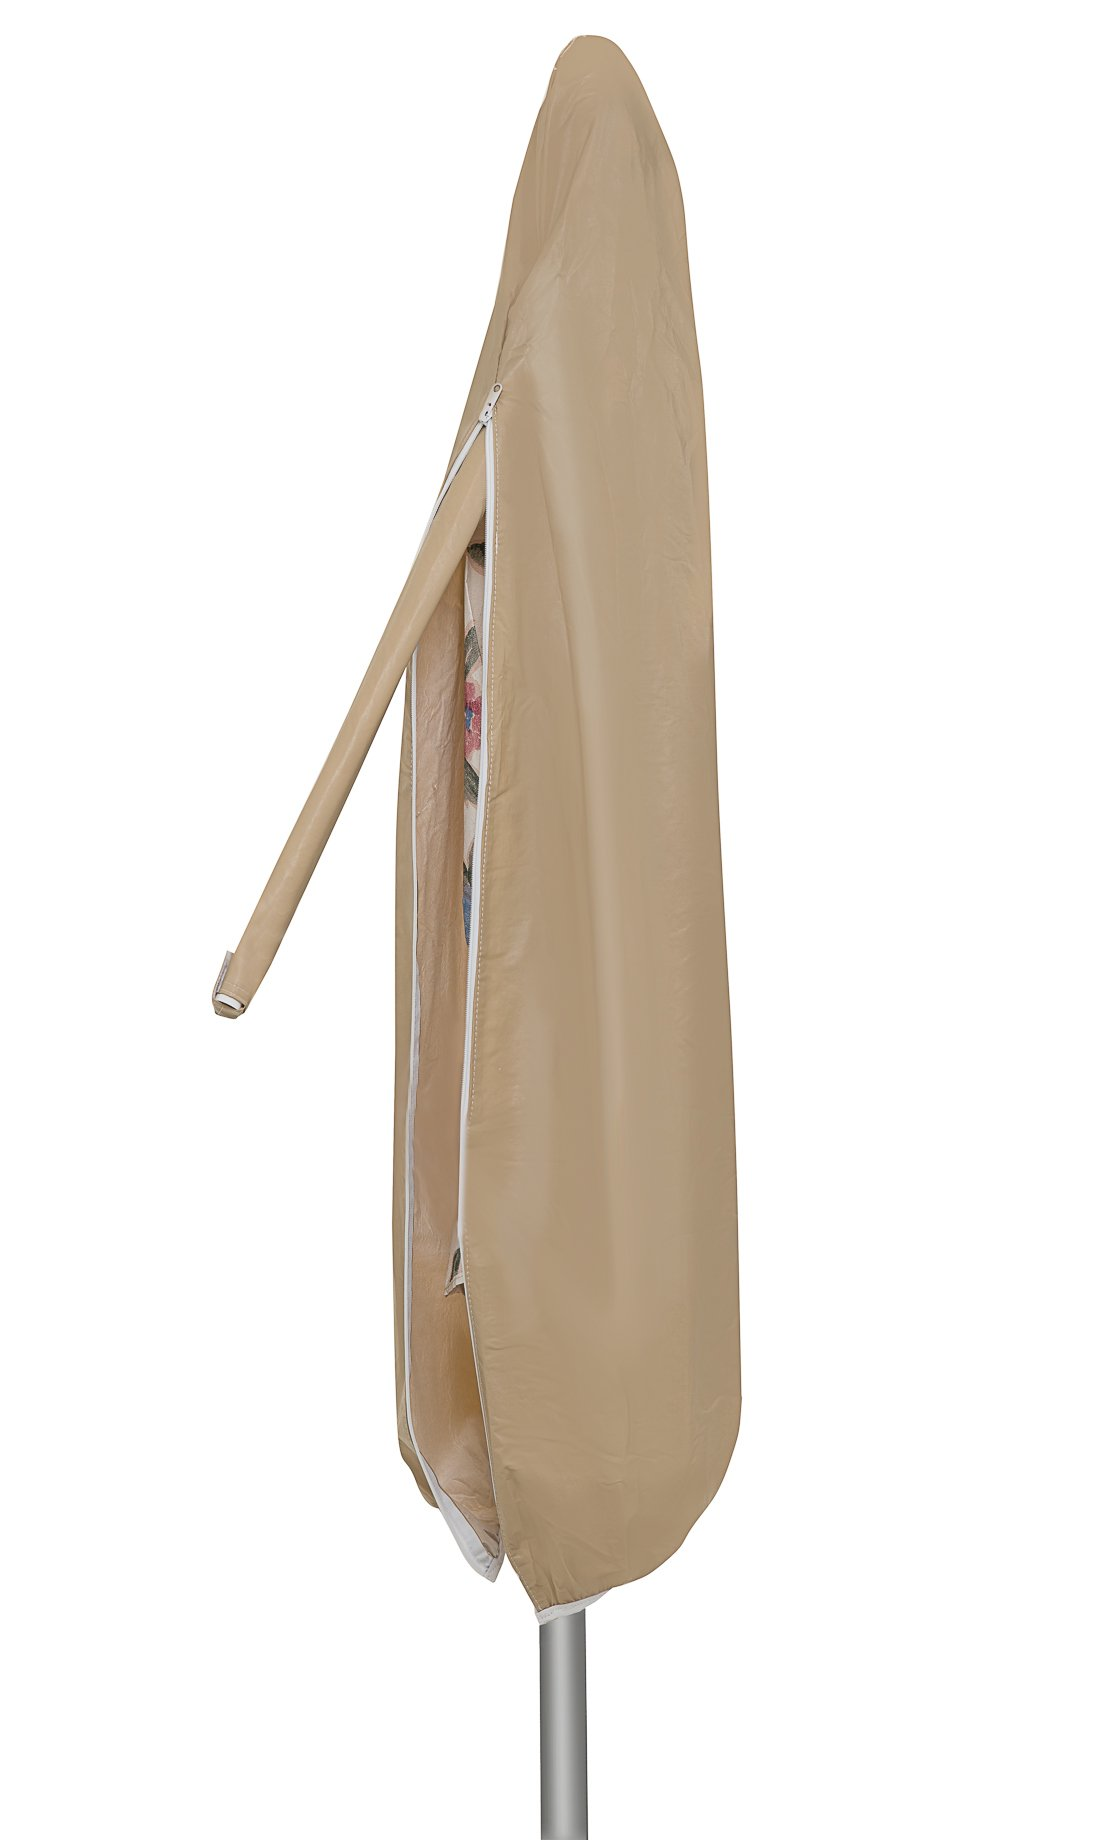 Protective Covers Weatherproof Umbrella Cover, 6 x 8 Feet, Tan - 1170-TN by Protective Covers